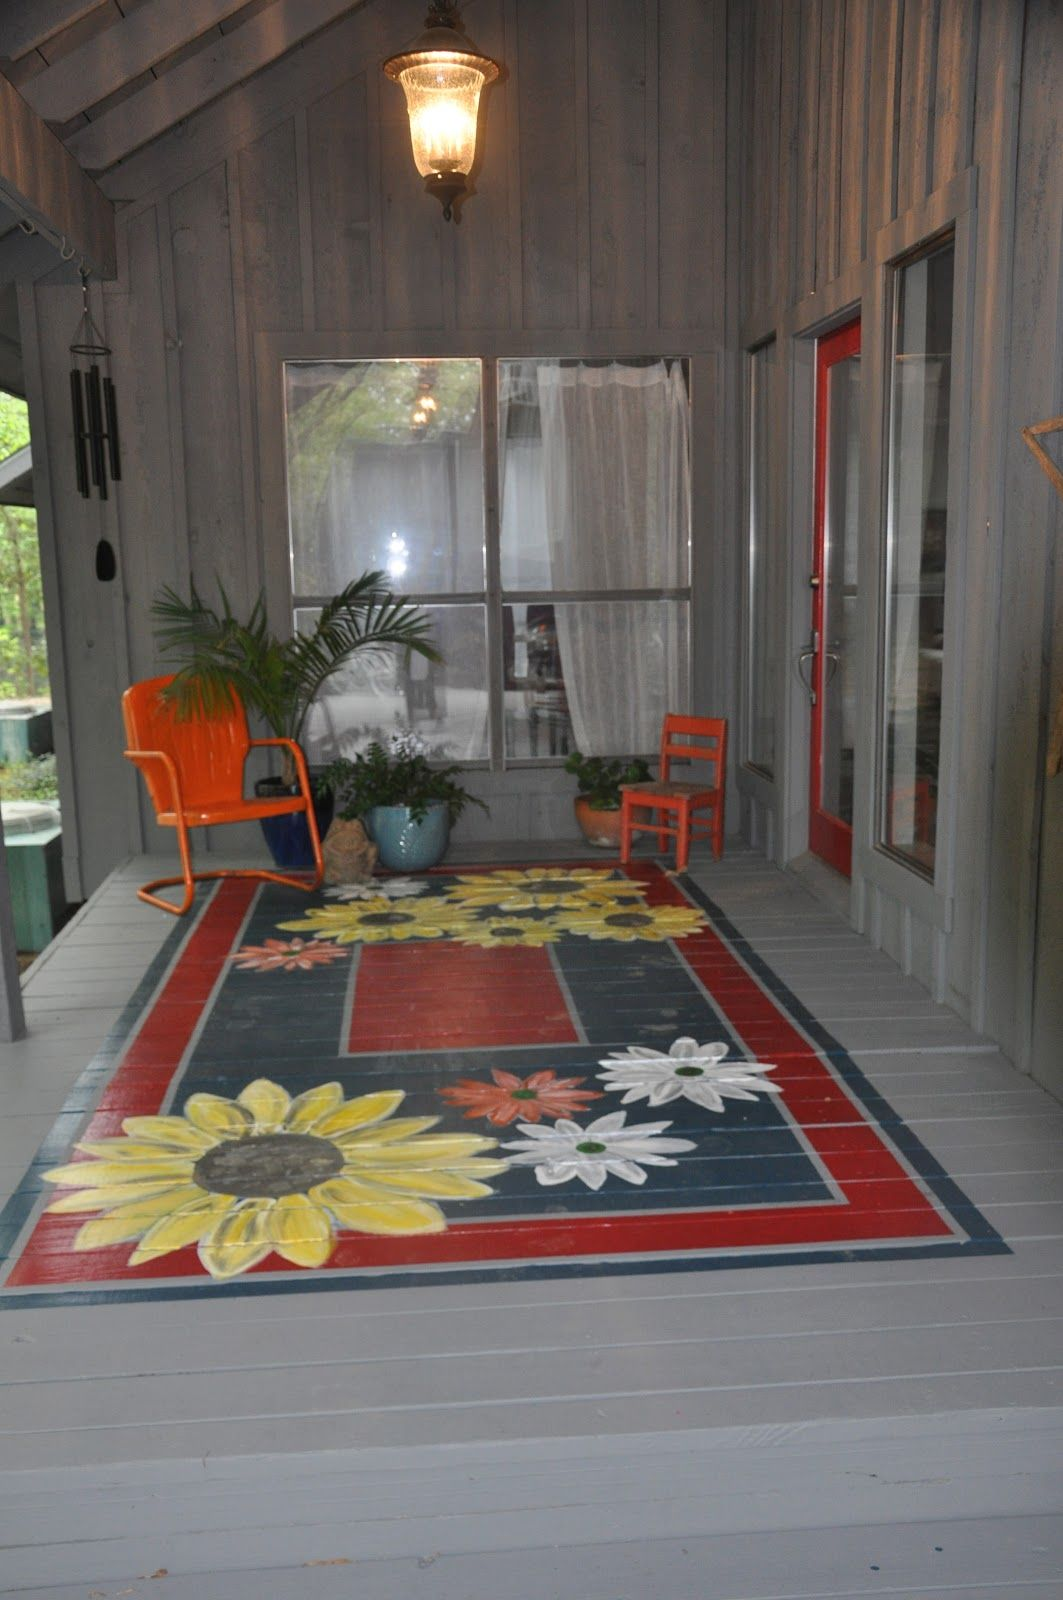 Painted Rug For Porch Hmmmm I Am Liking This Idea